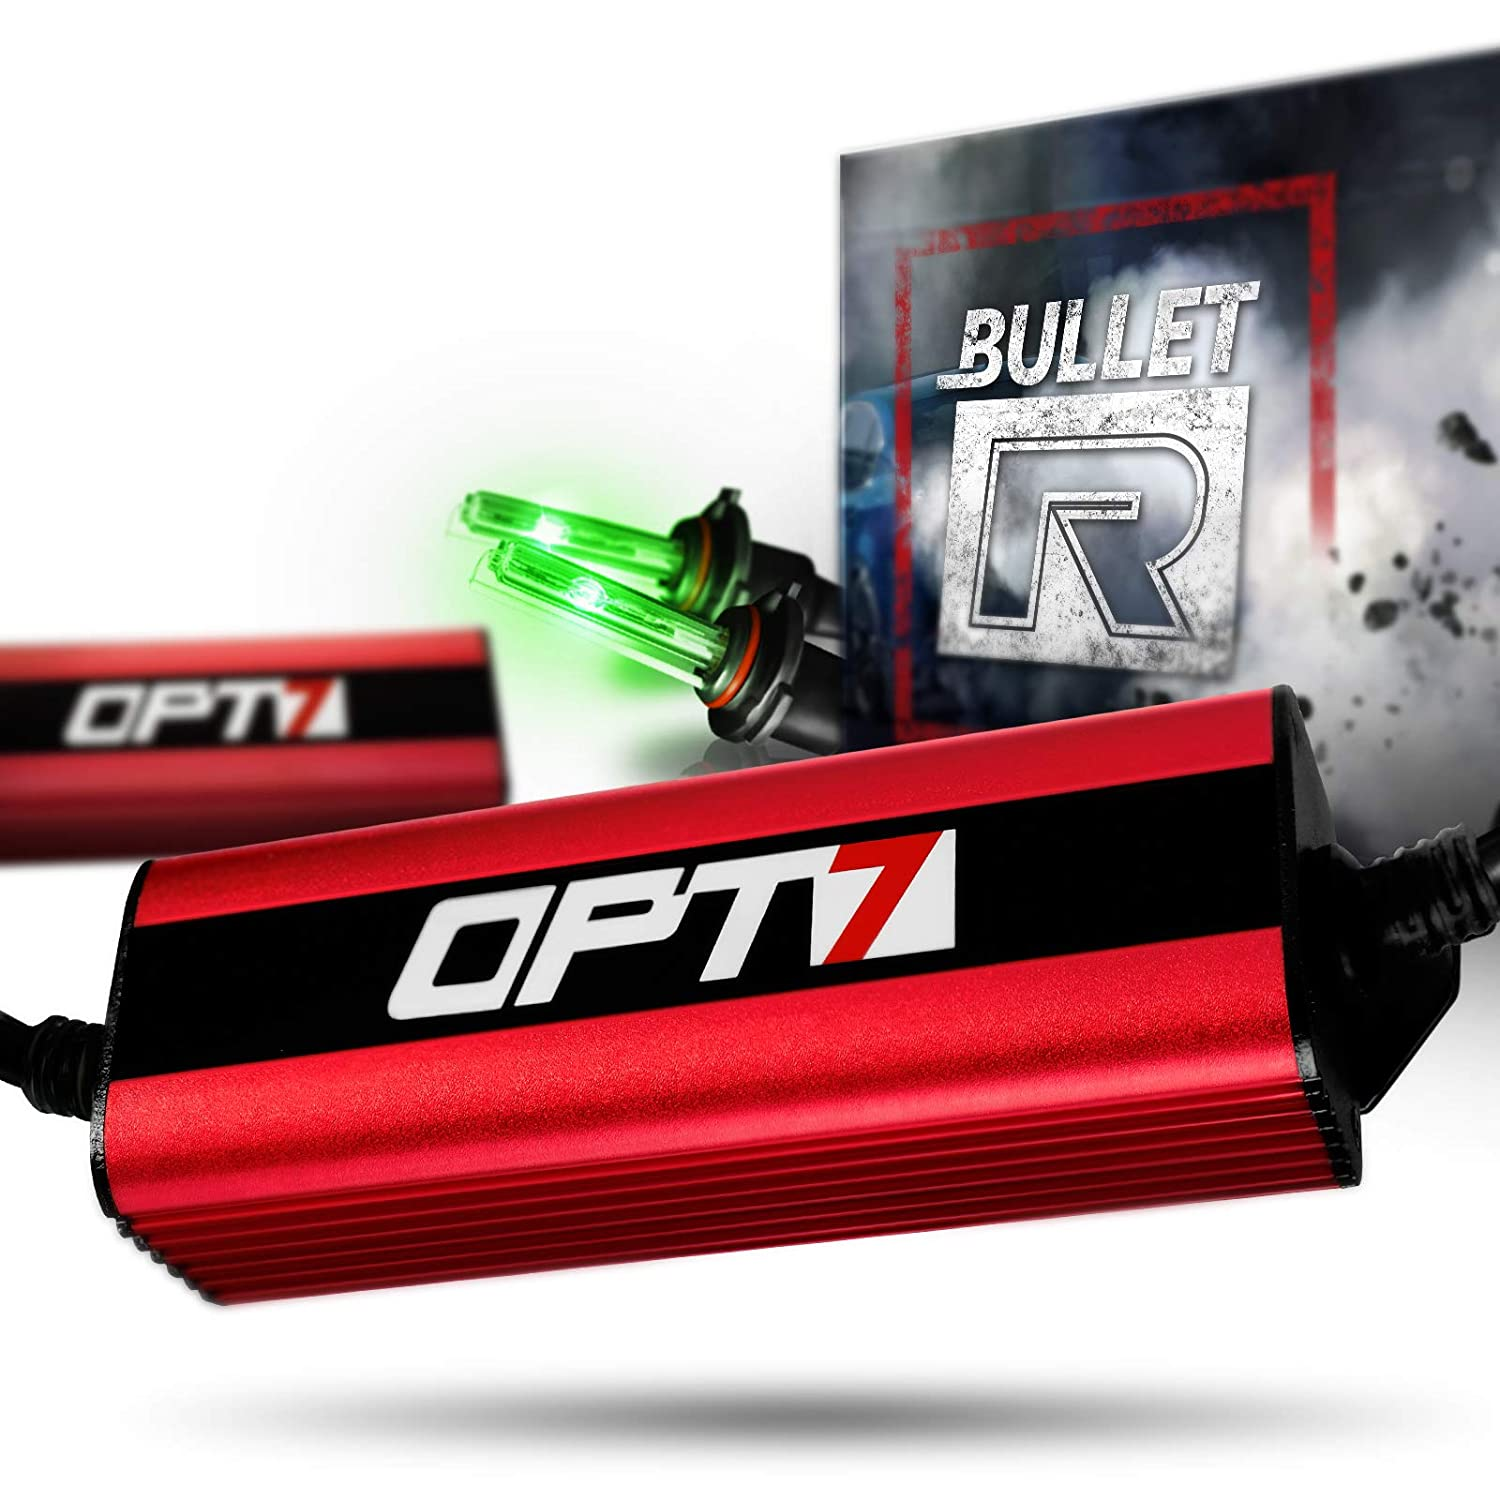 2 Yr Warranty 3X Brighter 4X Longer Life 5000K Bright White Light OPT7 Bullet-R H4 9003 Bi-Xenon HID Kit All Bulb Sizes and Colors